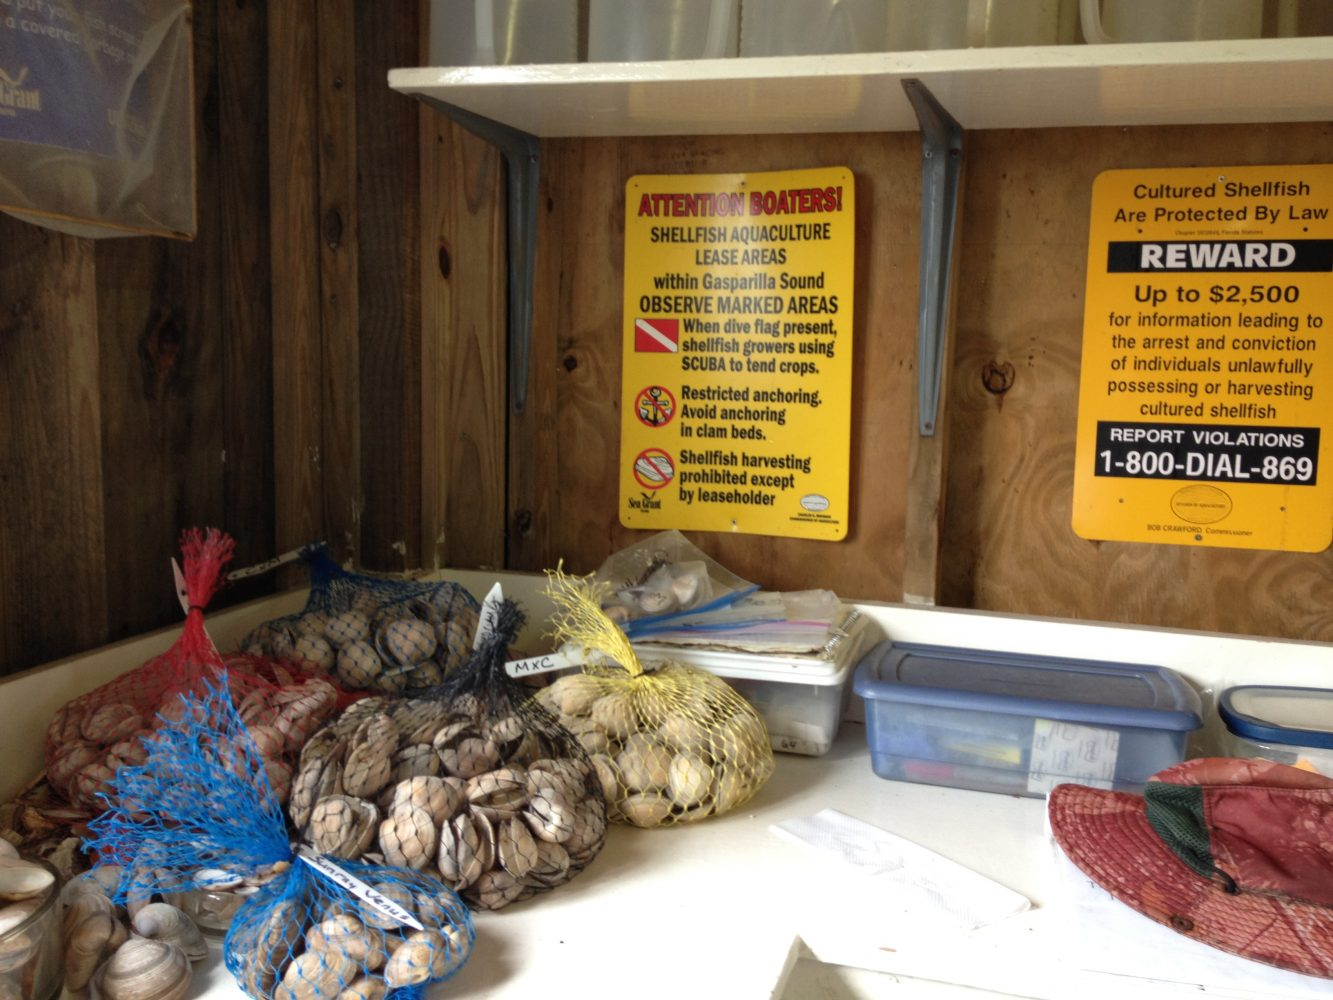 Bagged clams at Cedar Key research facility.